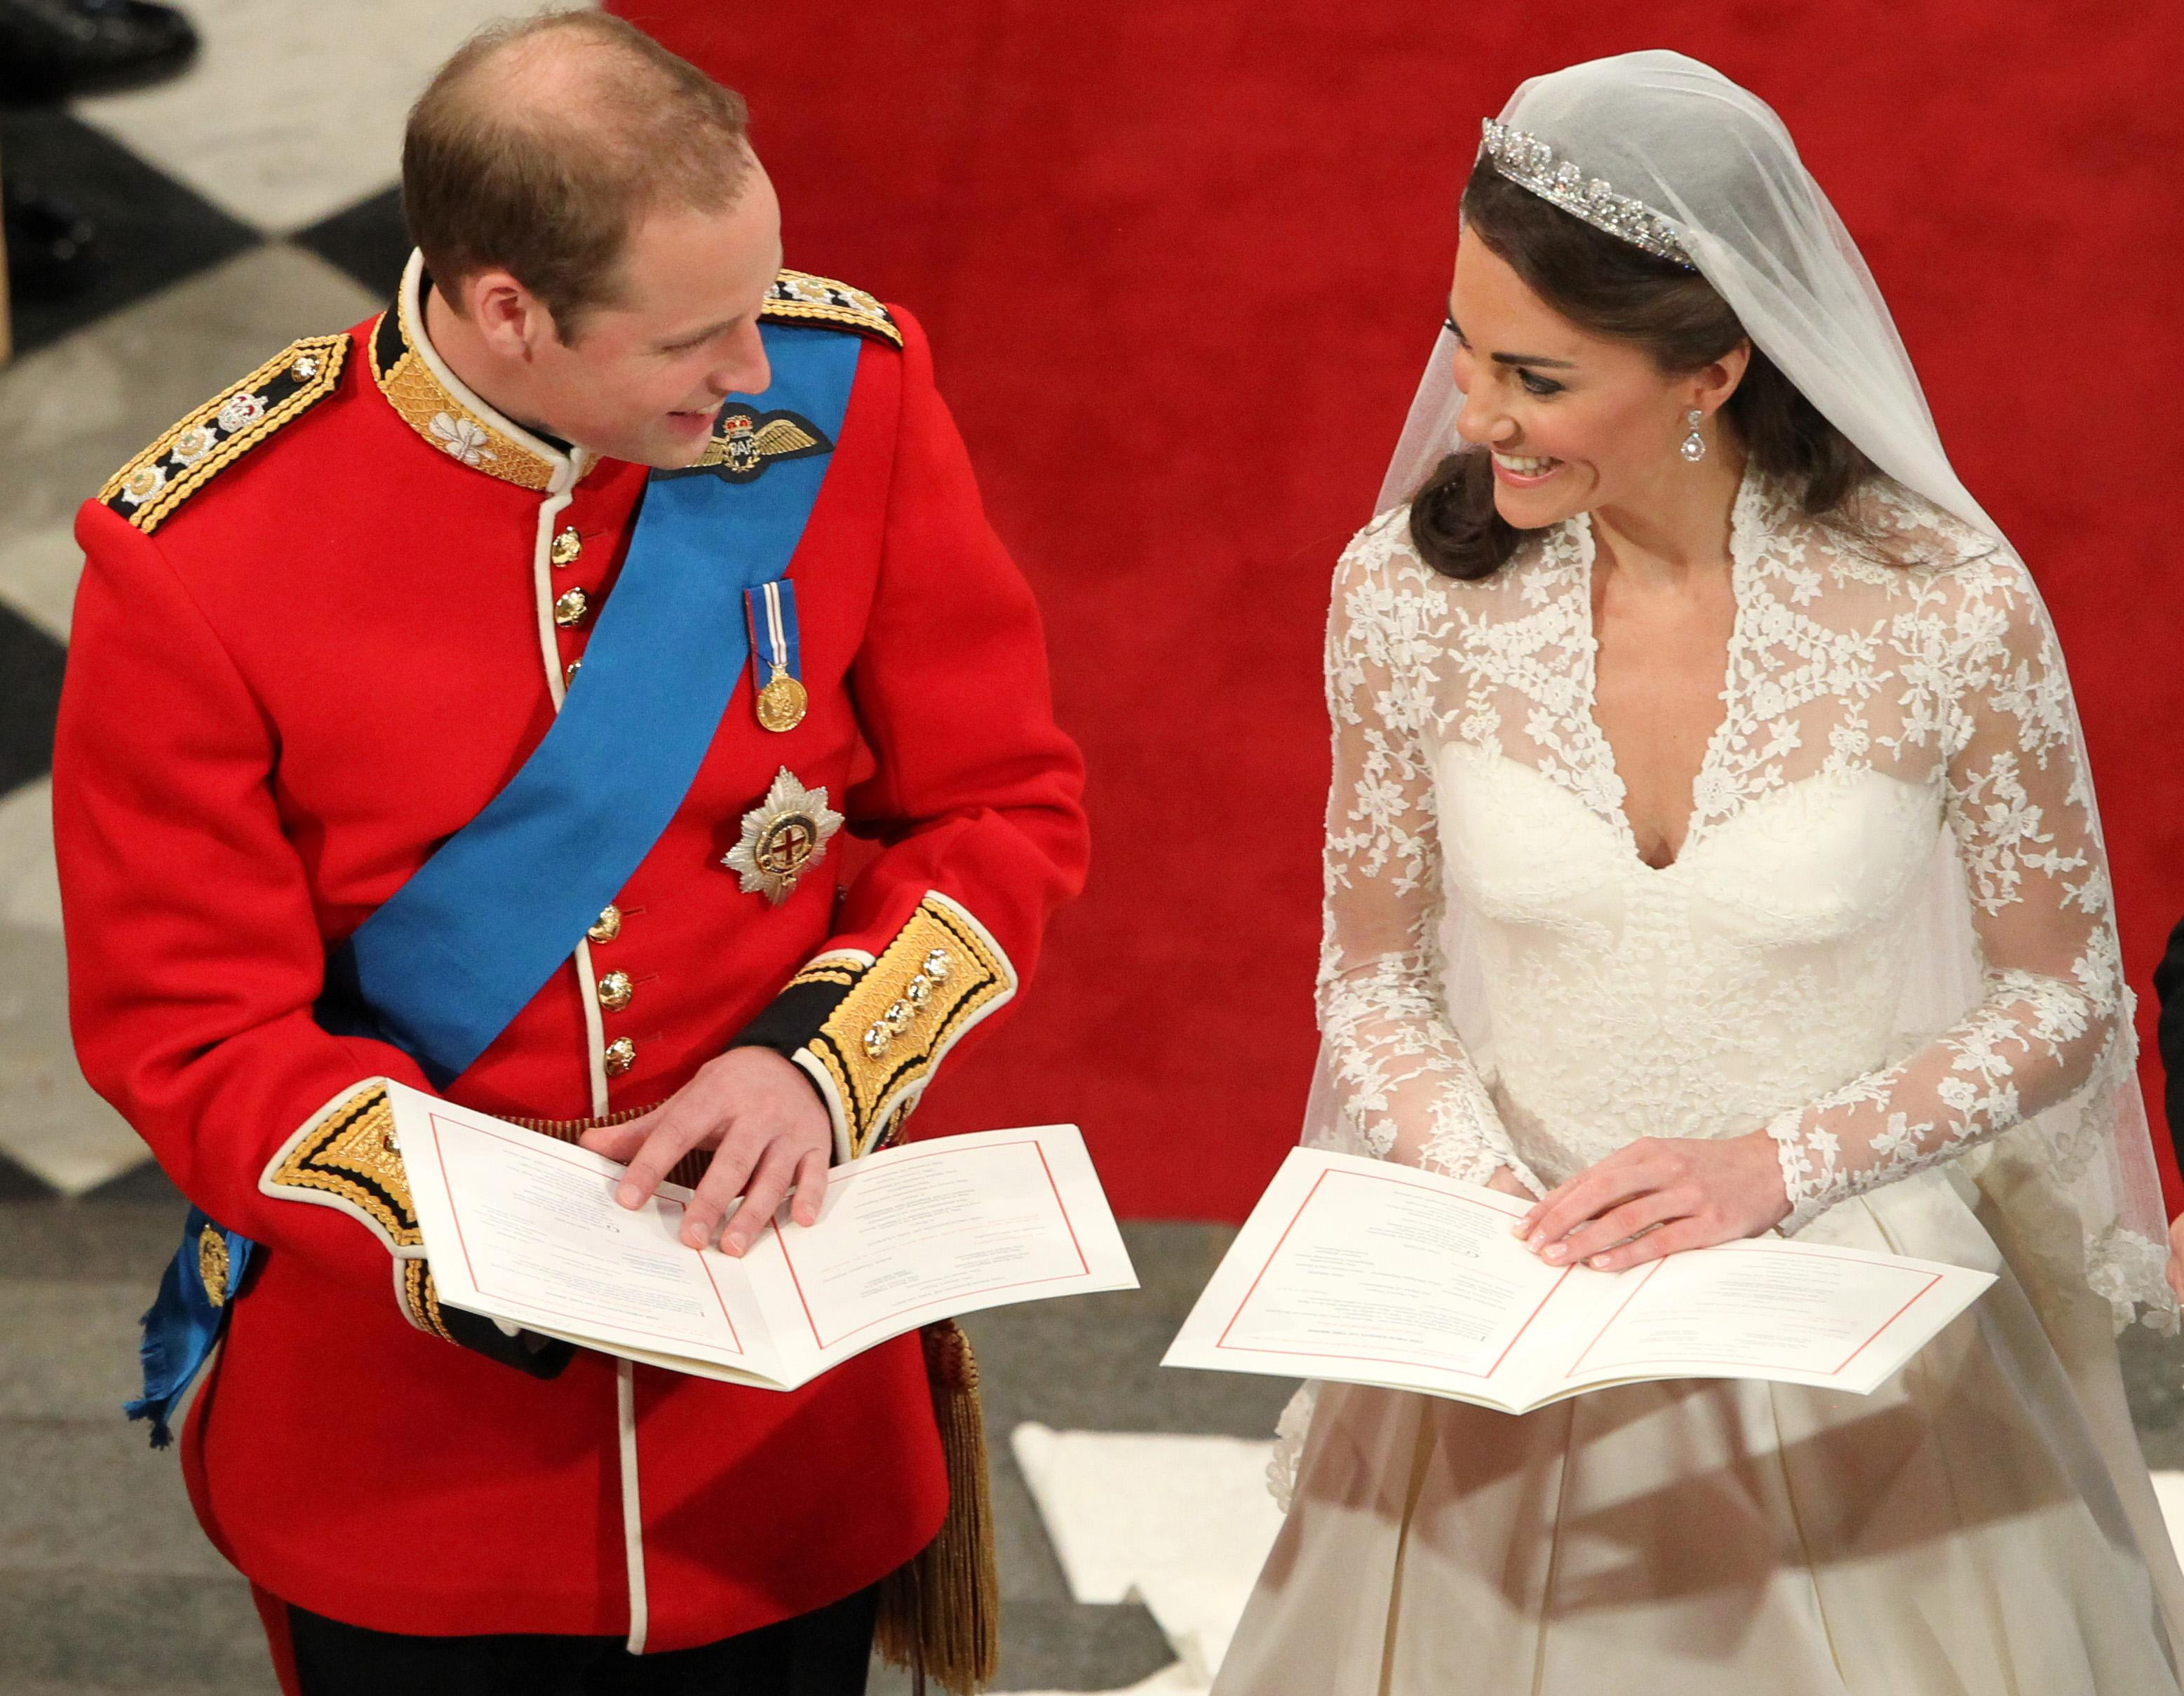 Prince William and Kate Middleton during their wedding service at Westminster Abbey in 2011 (Andrew Milligan/PA)